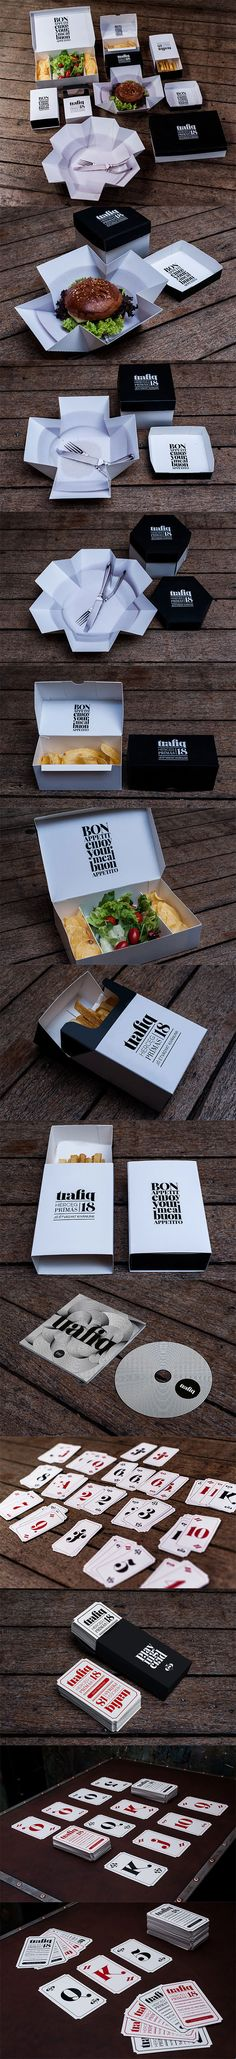 Really? a cigarette box for fries? If I want fast food, I really don't want to have to pay for your packaging, too.